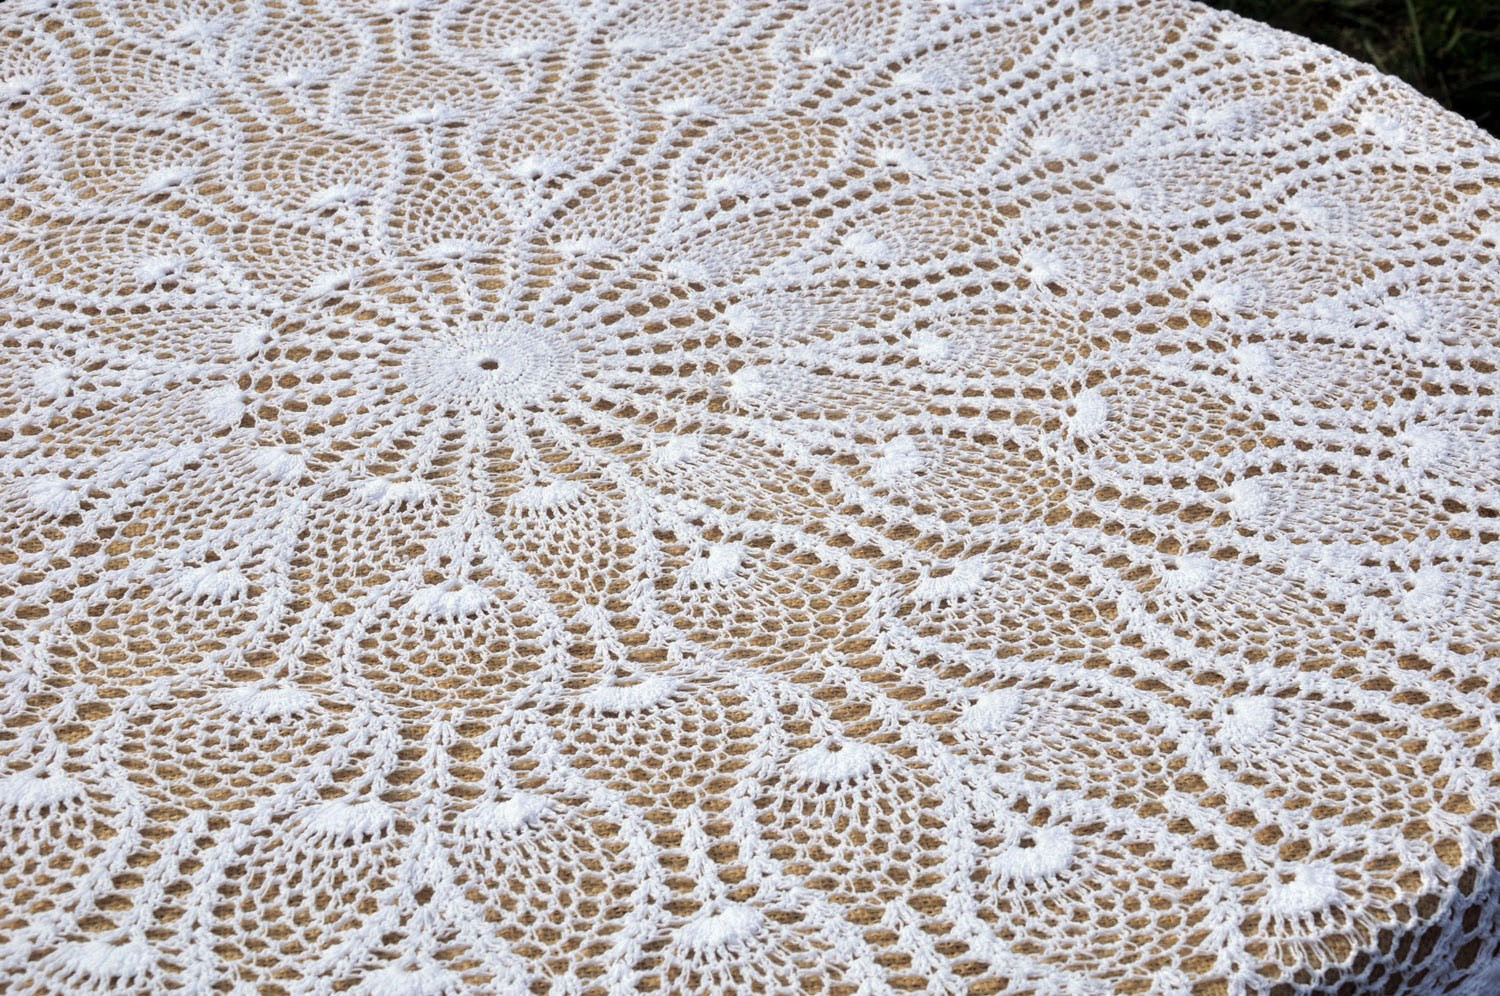 Crochet Round Tablecloths Best Of Scene Through My Eyes Let S Crochet A Little or Not Of Unique 43 Pictures Crochet Round Tablecloths